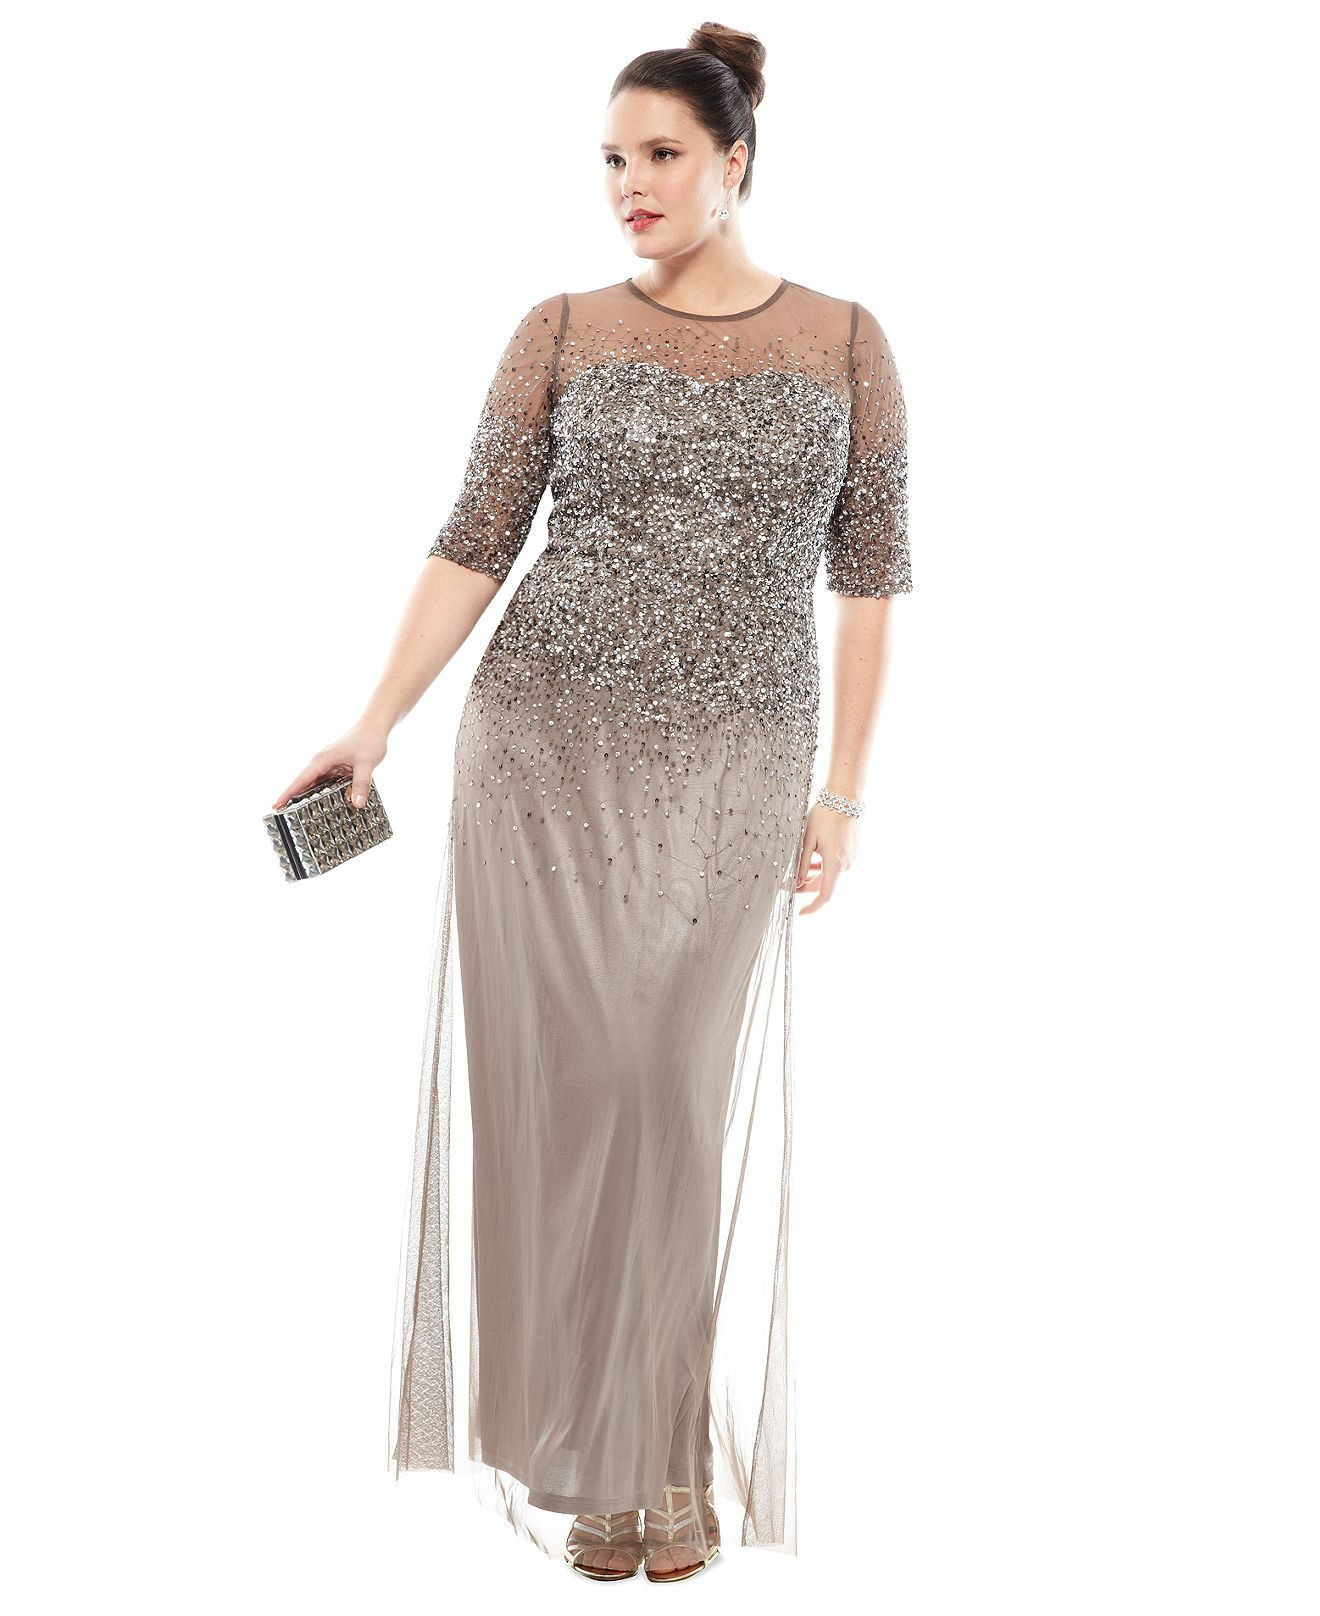 Beaded dress plus size